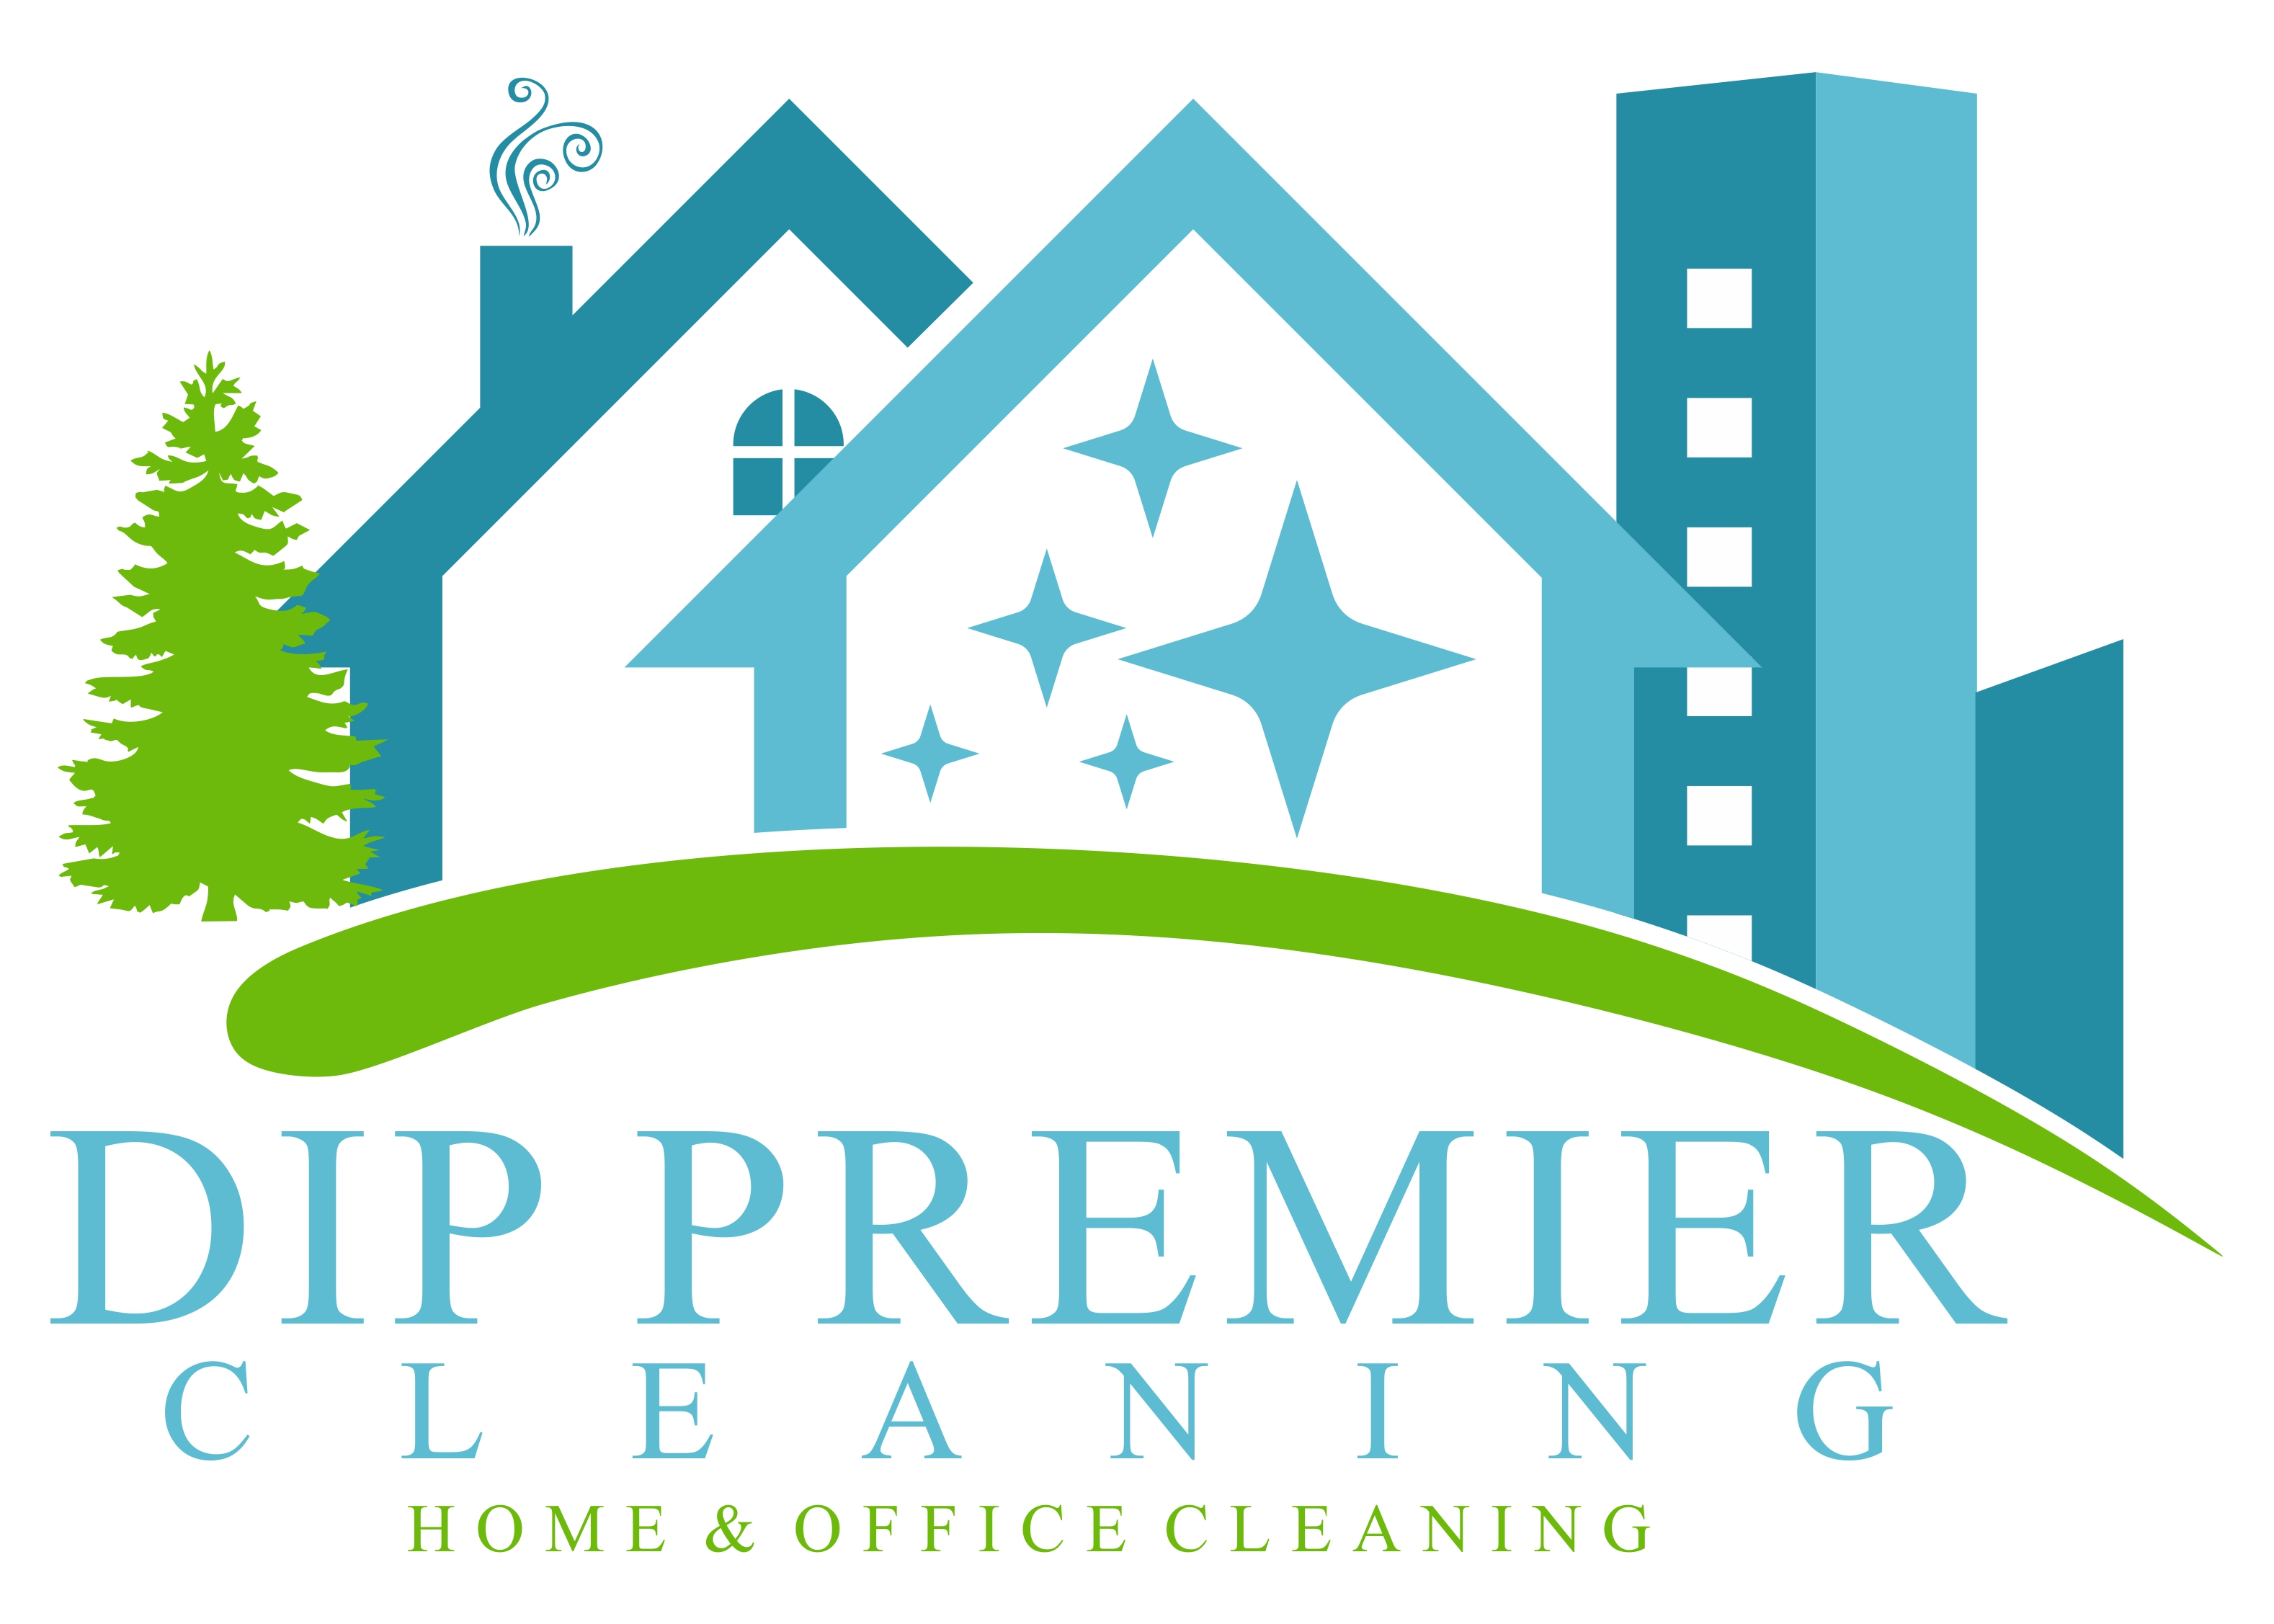 Dip Premier Cleaning